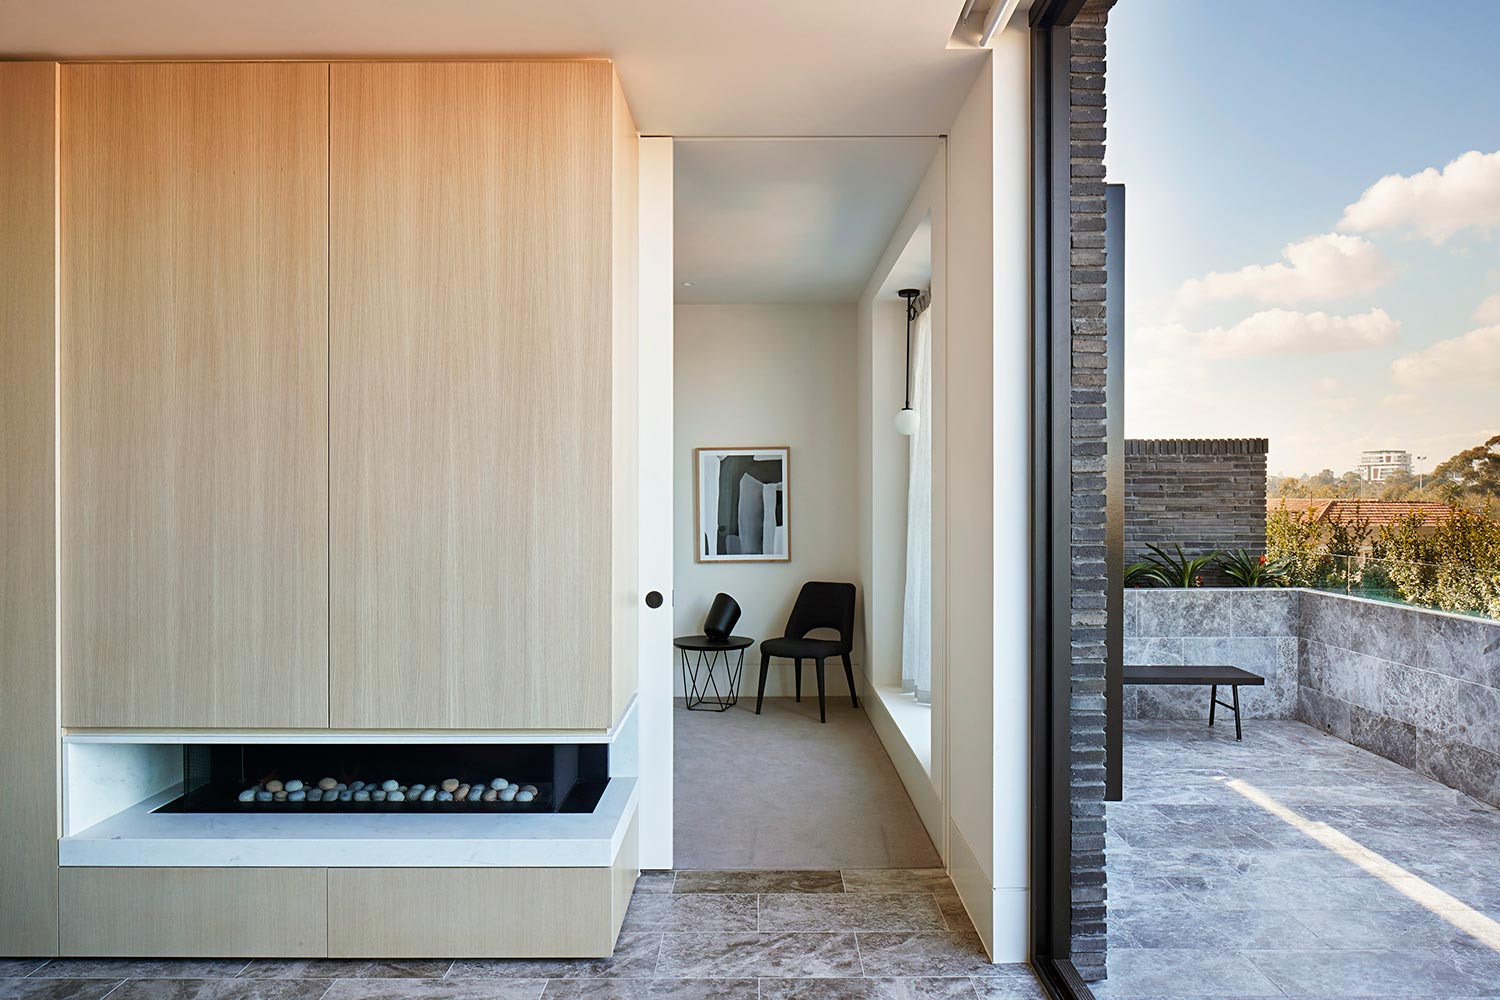 Elwood House by Woods Bagot with Hecker Guthrie. Photo by Shannon McGrath. 2018 INDE.Awards shortlisted project.